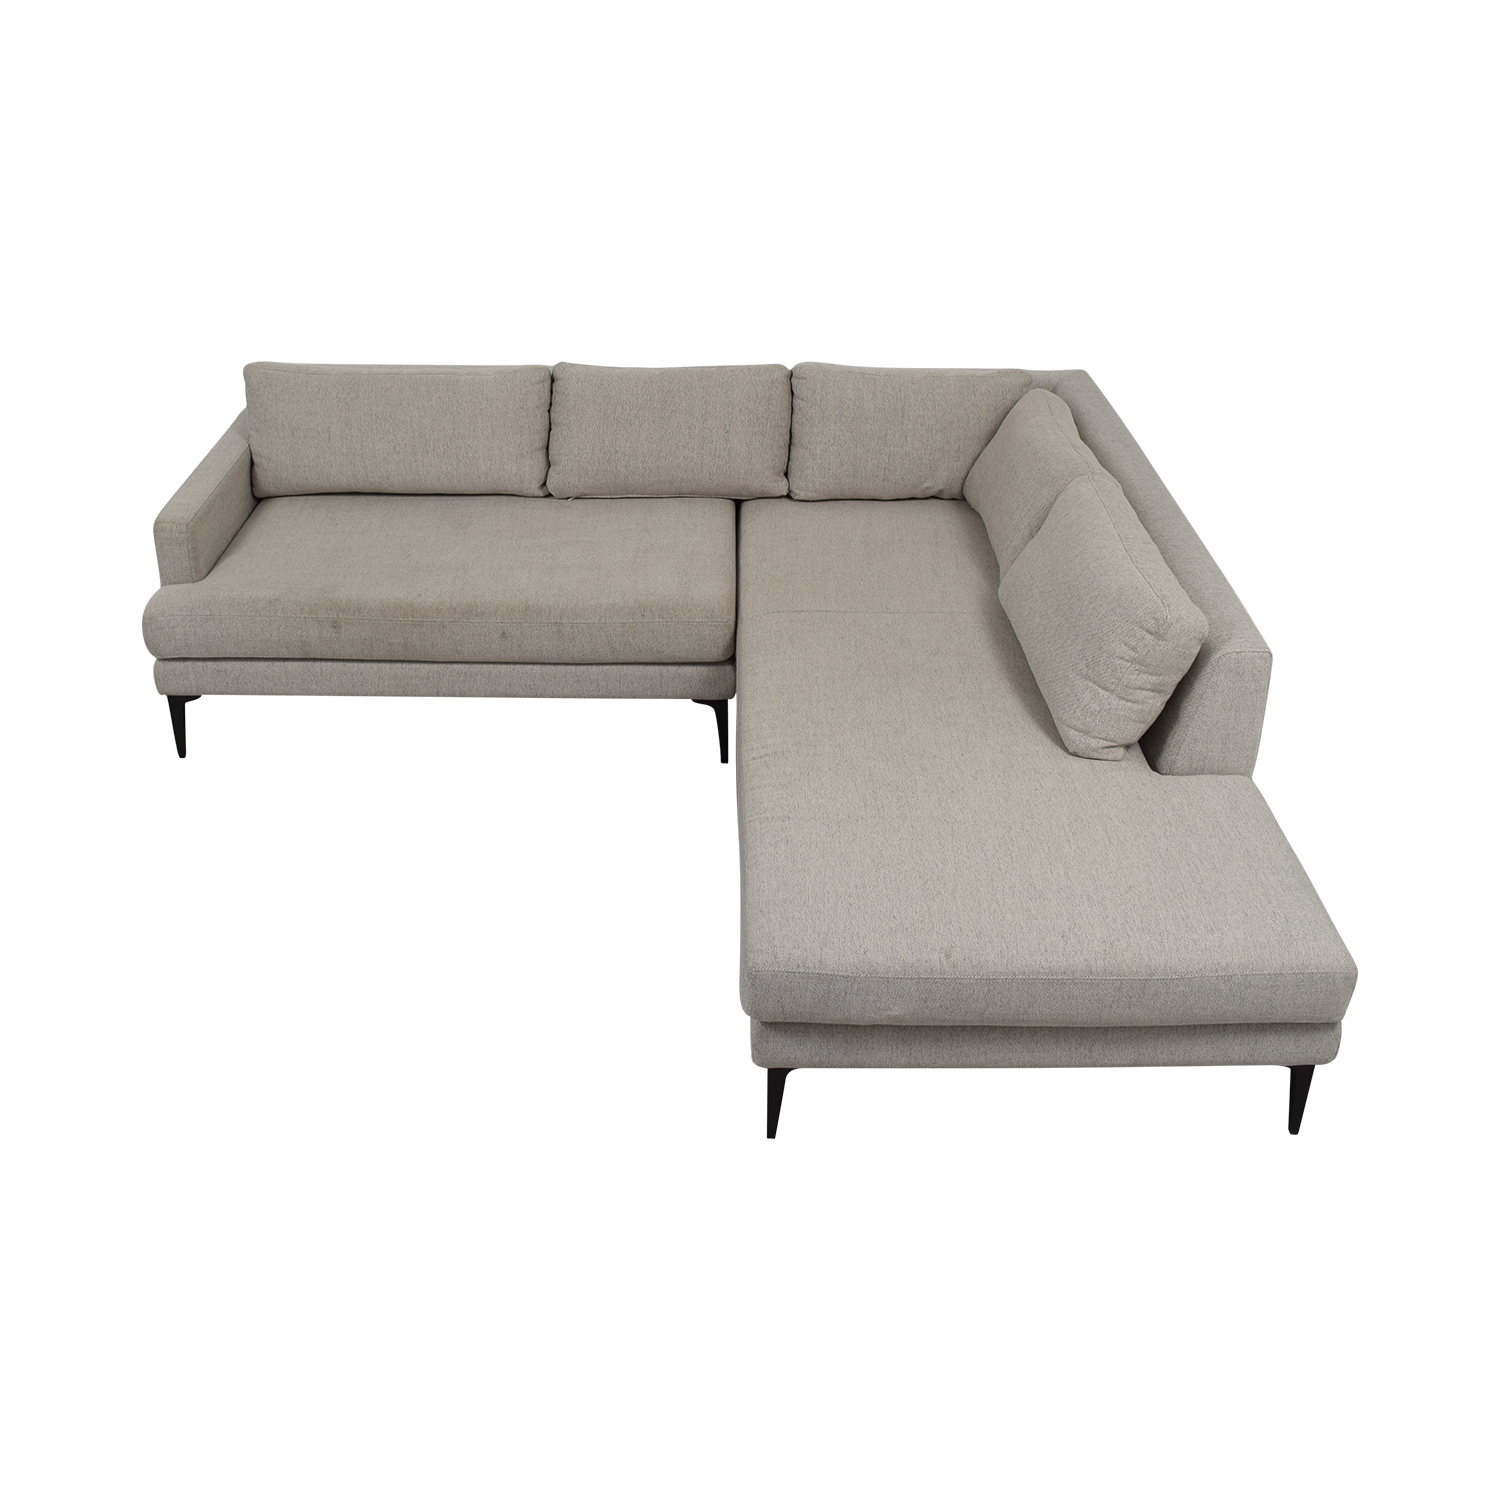 West Elm West Elm Andre Gray Left Chaise Sectional for sale